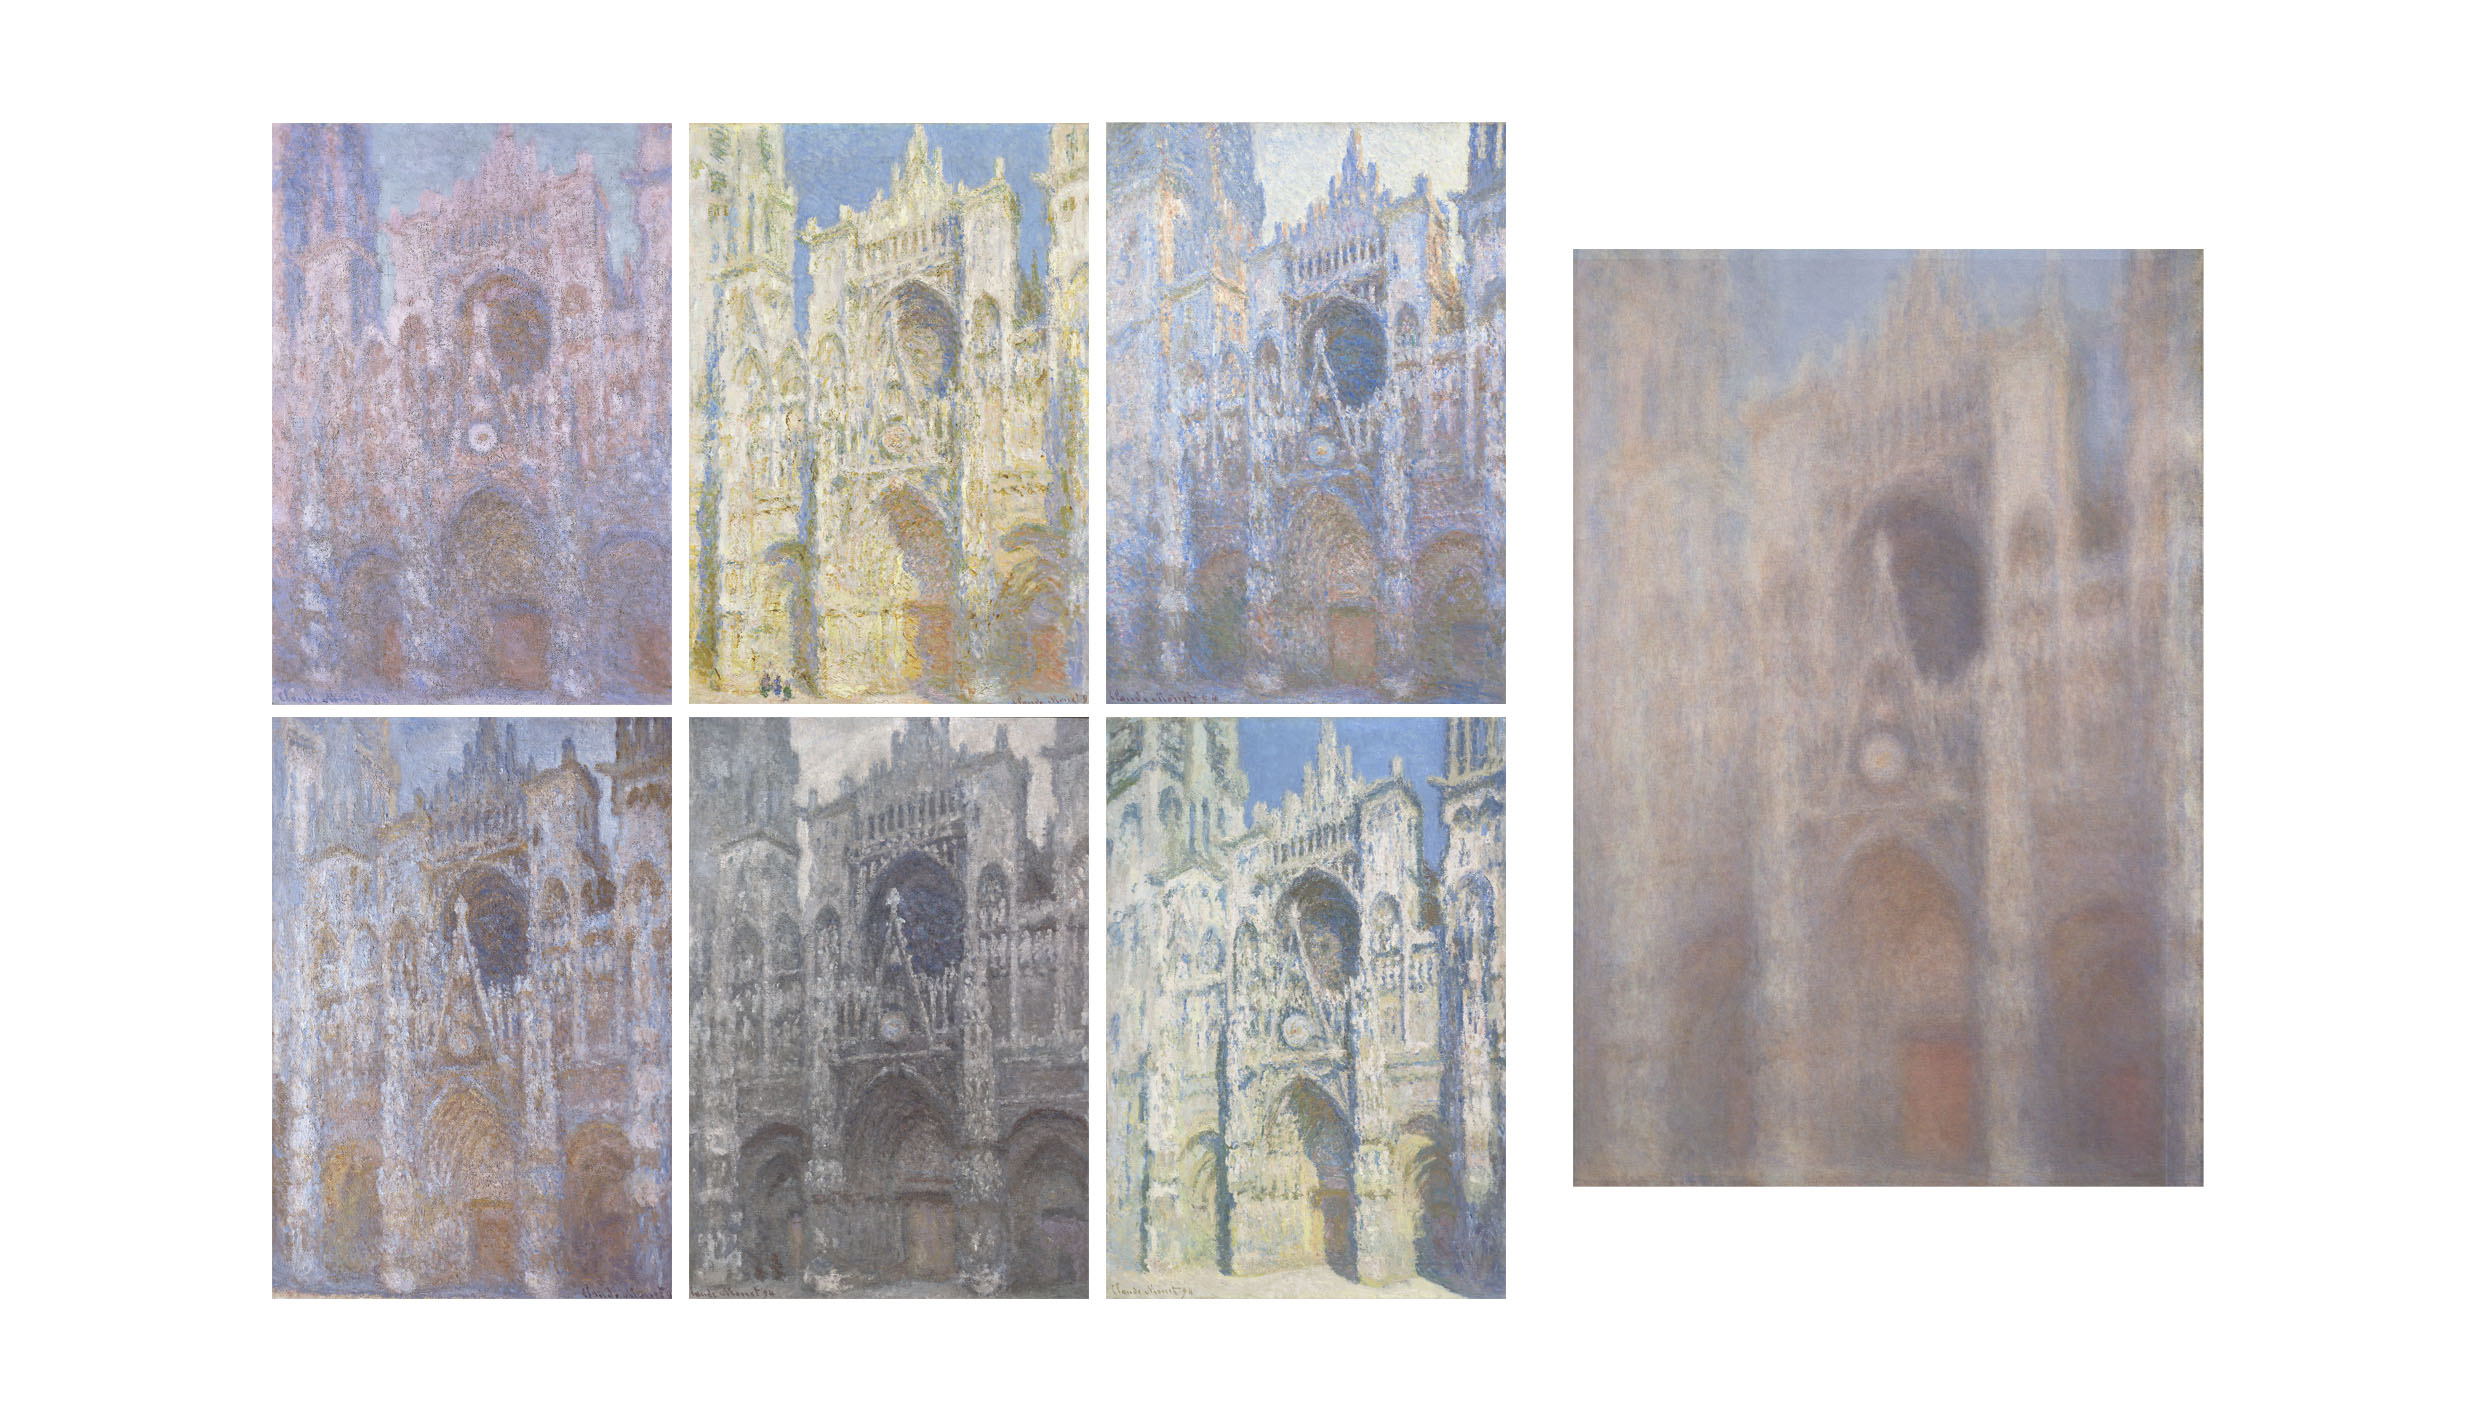 Figure 2. A subset of nearly thirty paintings by Monet of the façade of the Rouen Cathedral (left) and an averaged composite of a subset of the paintings created in Photoshop (right).